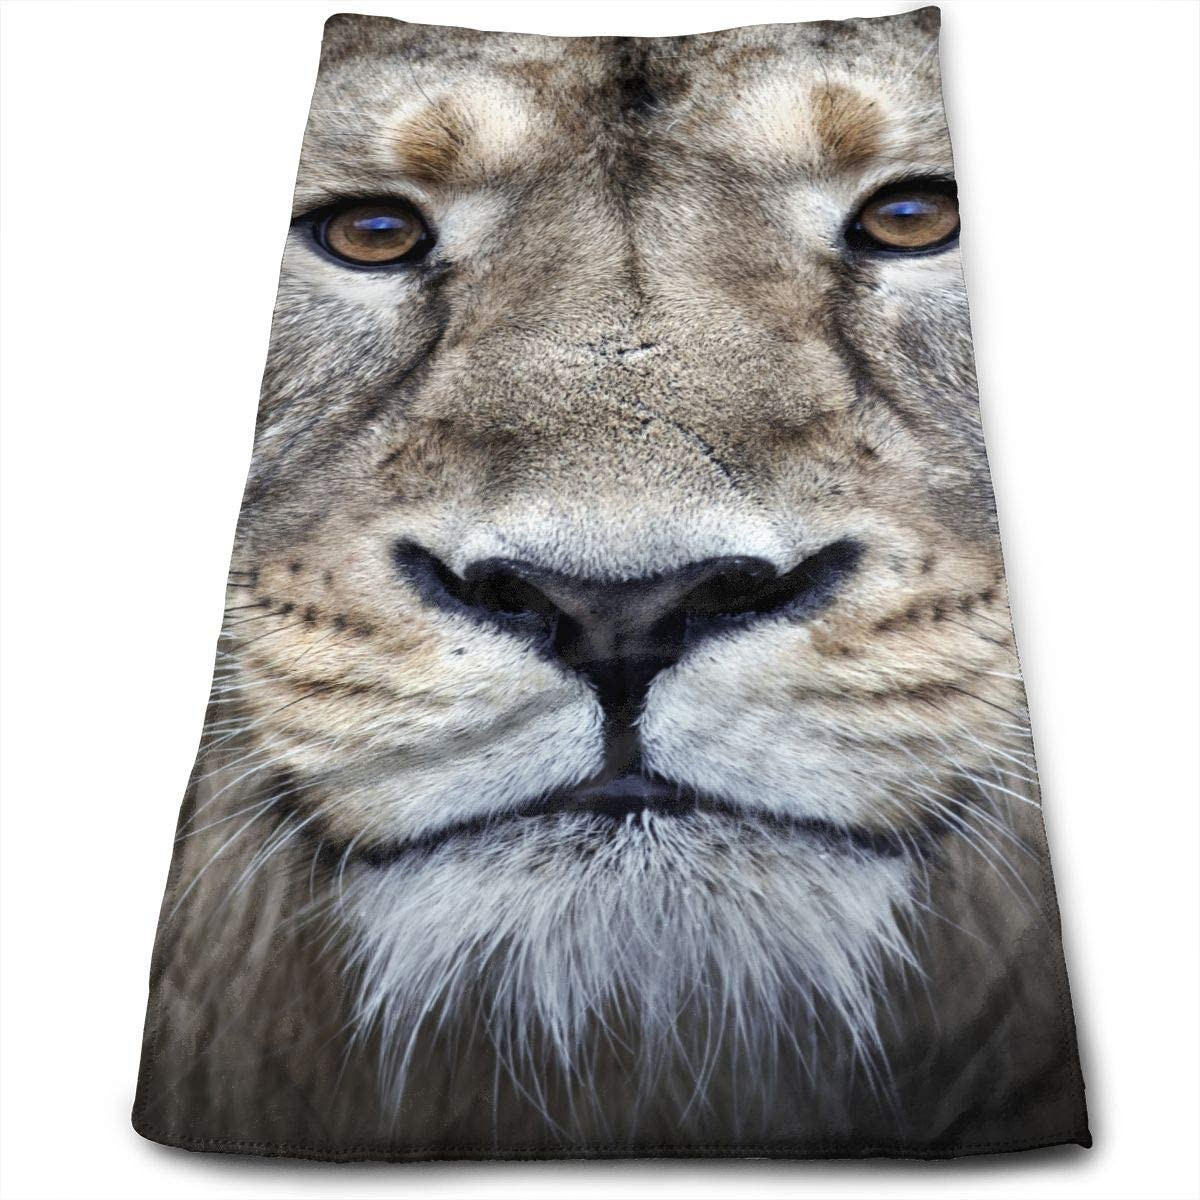 Juziwen Hand Towels Alpaca Face Towels Highly Absorbent Towels for Face Gym and Spa 12 X 27.5